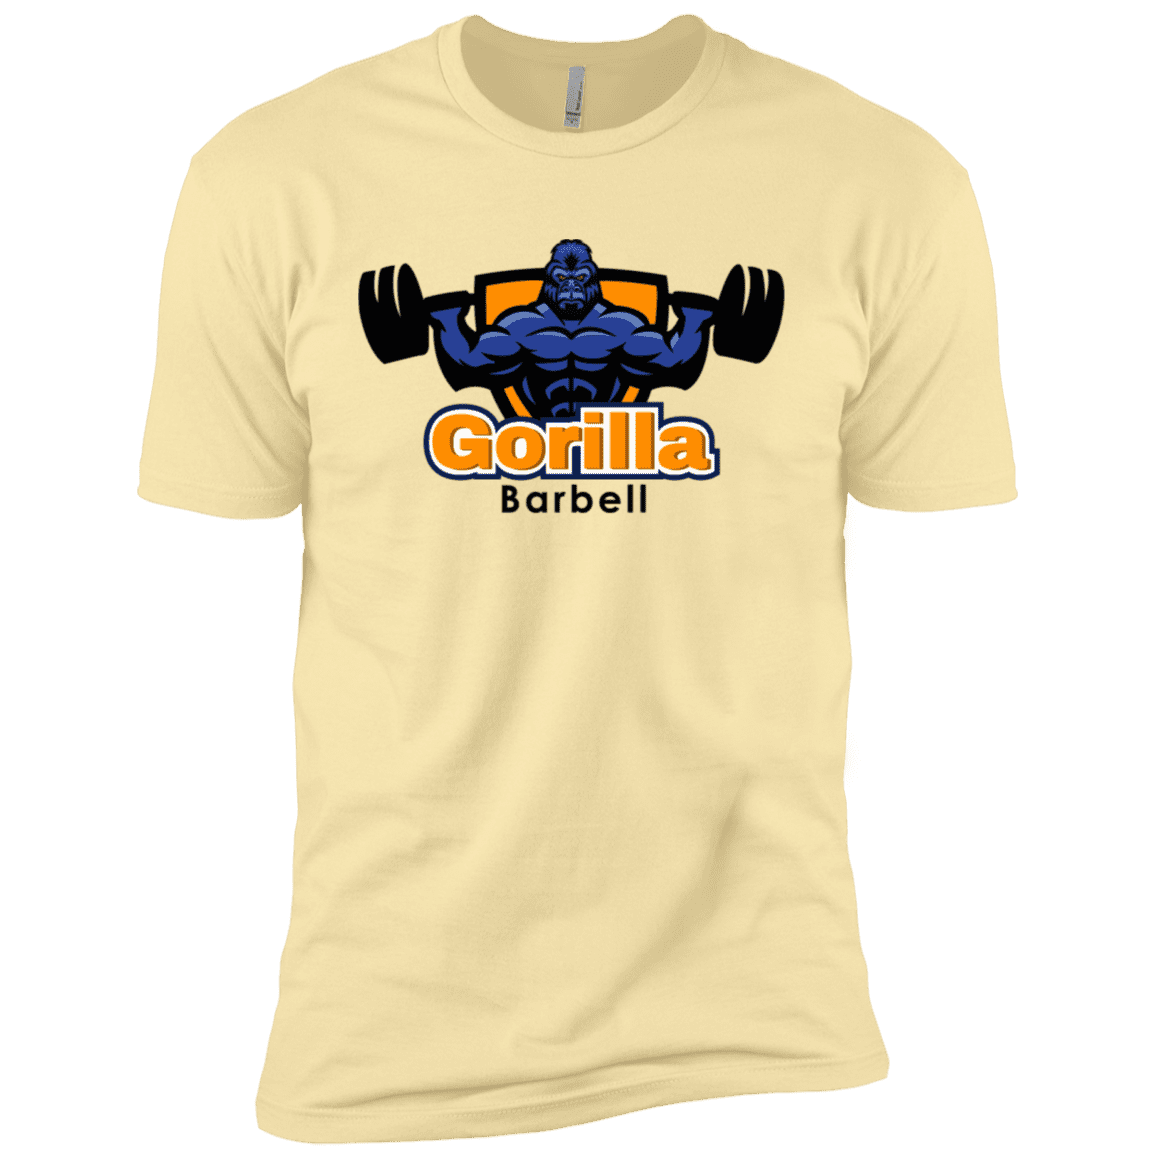 T-Shirts Banana Cream / X-Small Gorilla Barbell1 XC Tee